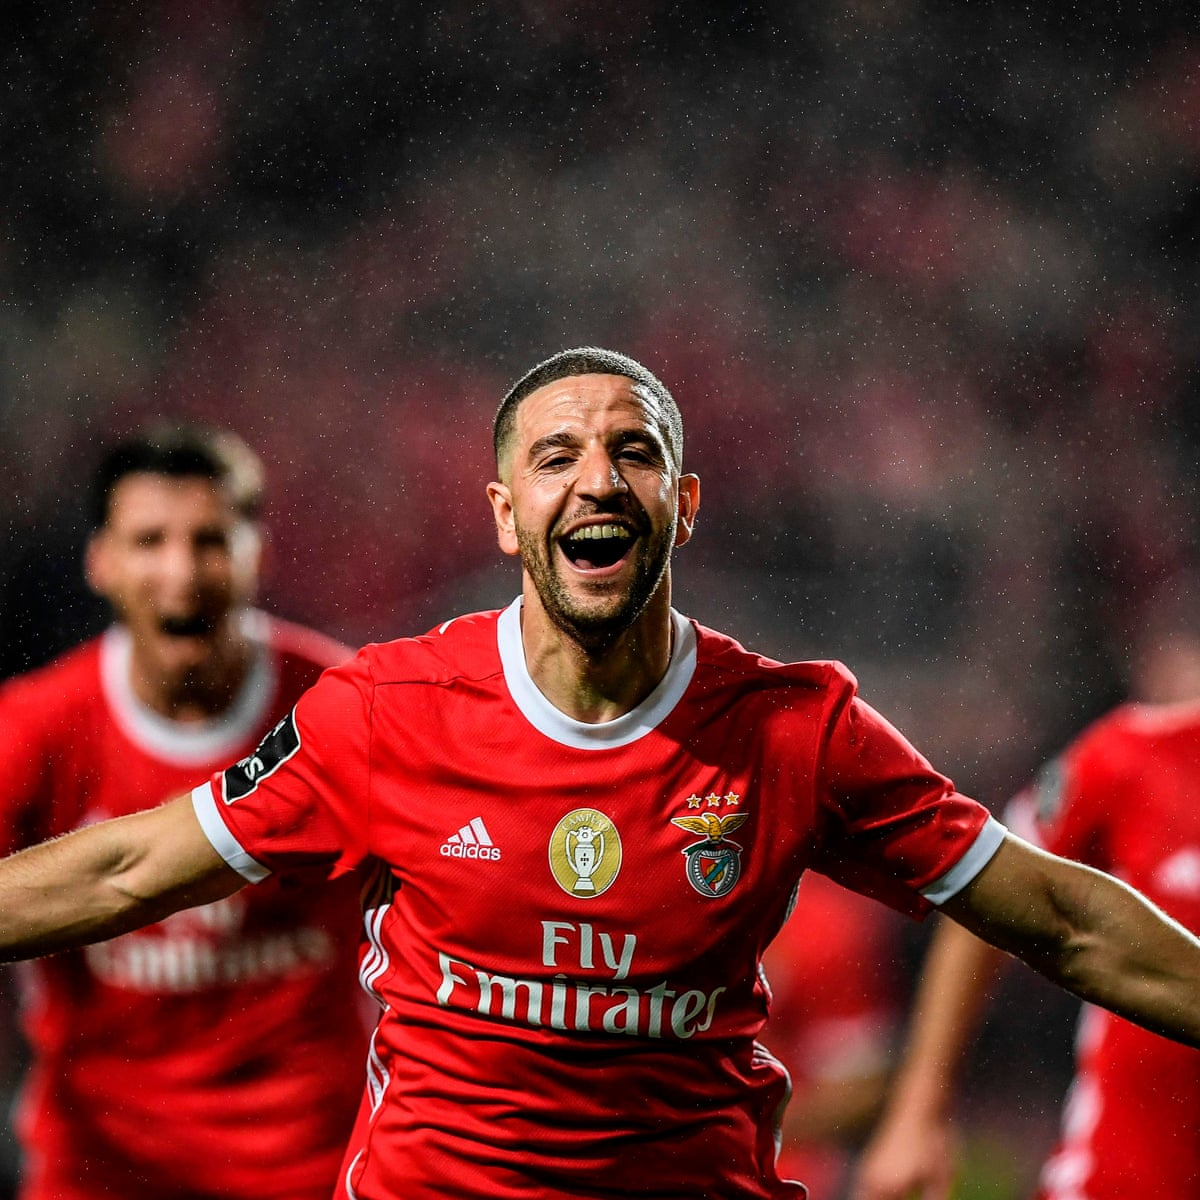 Return of Taarabt: how Adel reinvented himself at Benfica | Benfica | The  Guardian